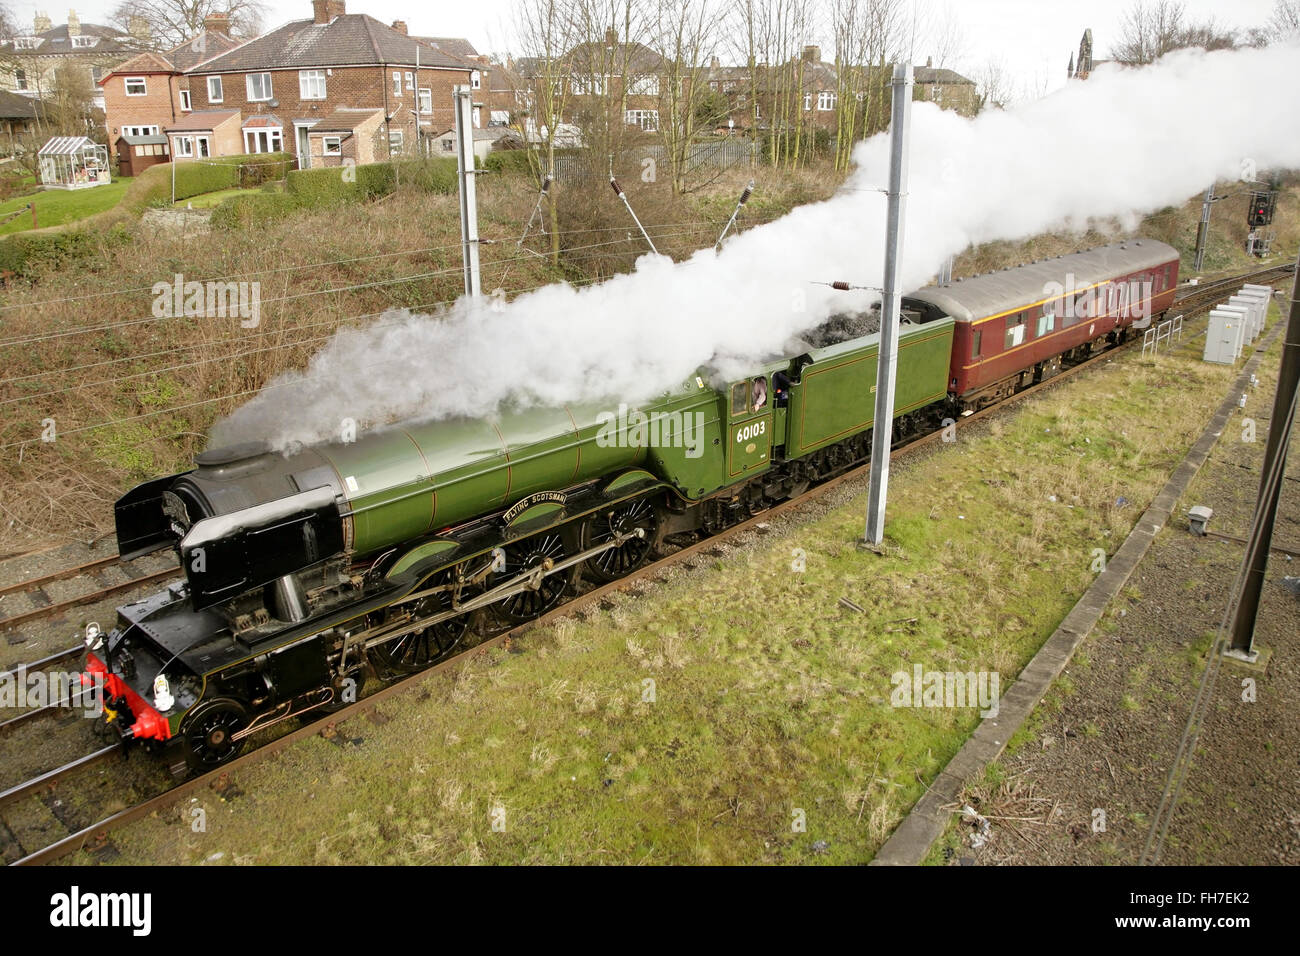 """York, UK, 24 February 2016. Newly restored LNER A3 class locomotive """"Flying Scotsman"""" leaves York on its way to Stock Photo"""